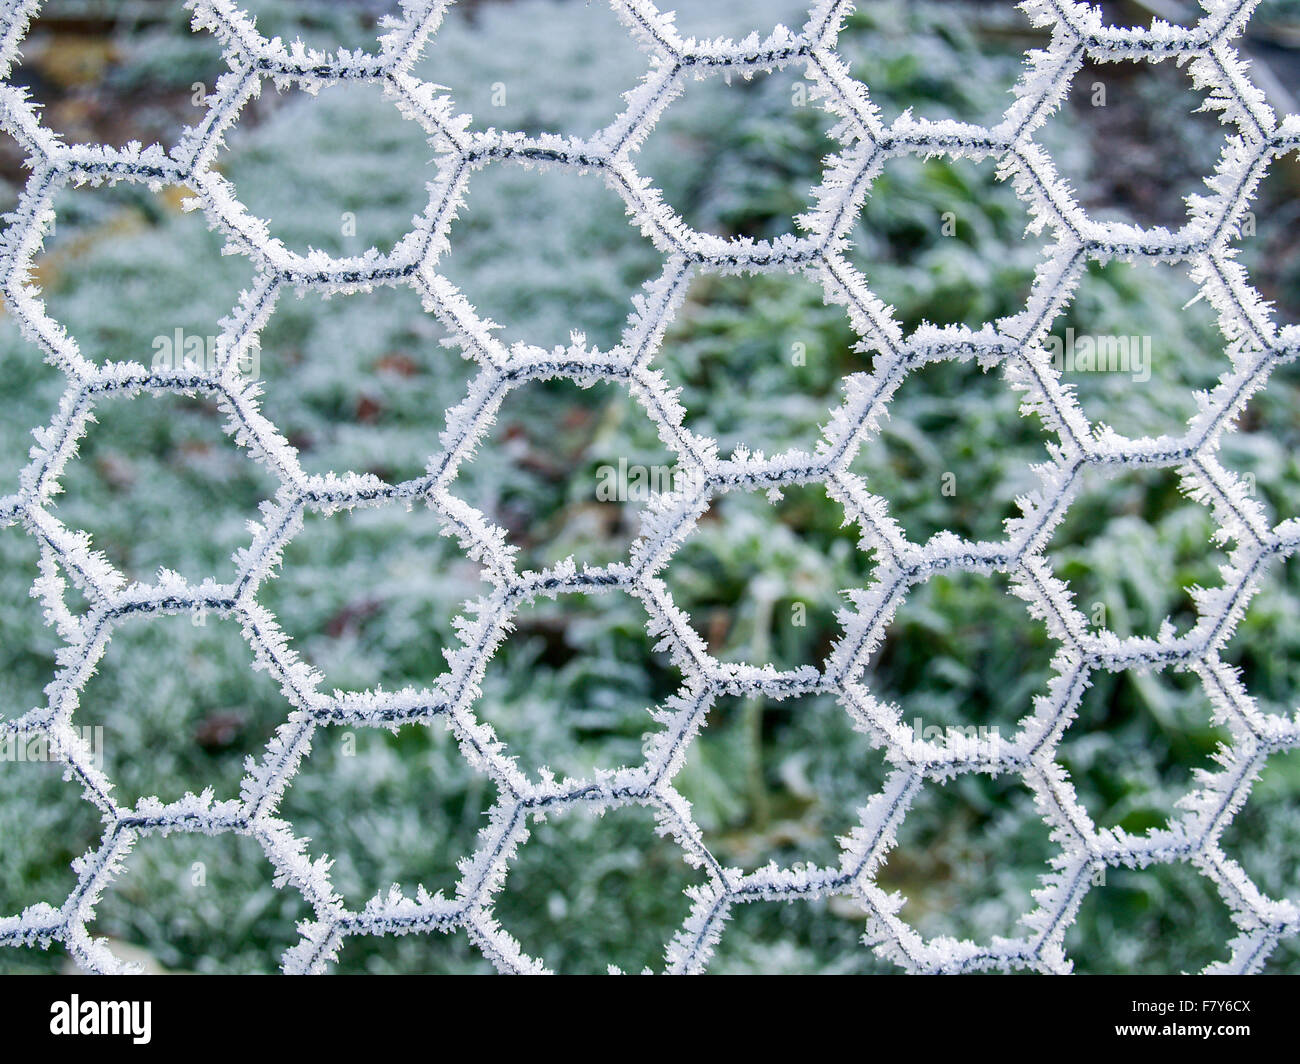 Chicken Wire Stock Photos & Chicken Wire Stock Images - Page 2 - Alamy